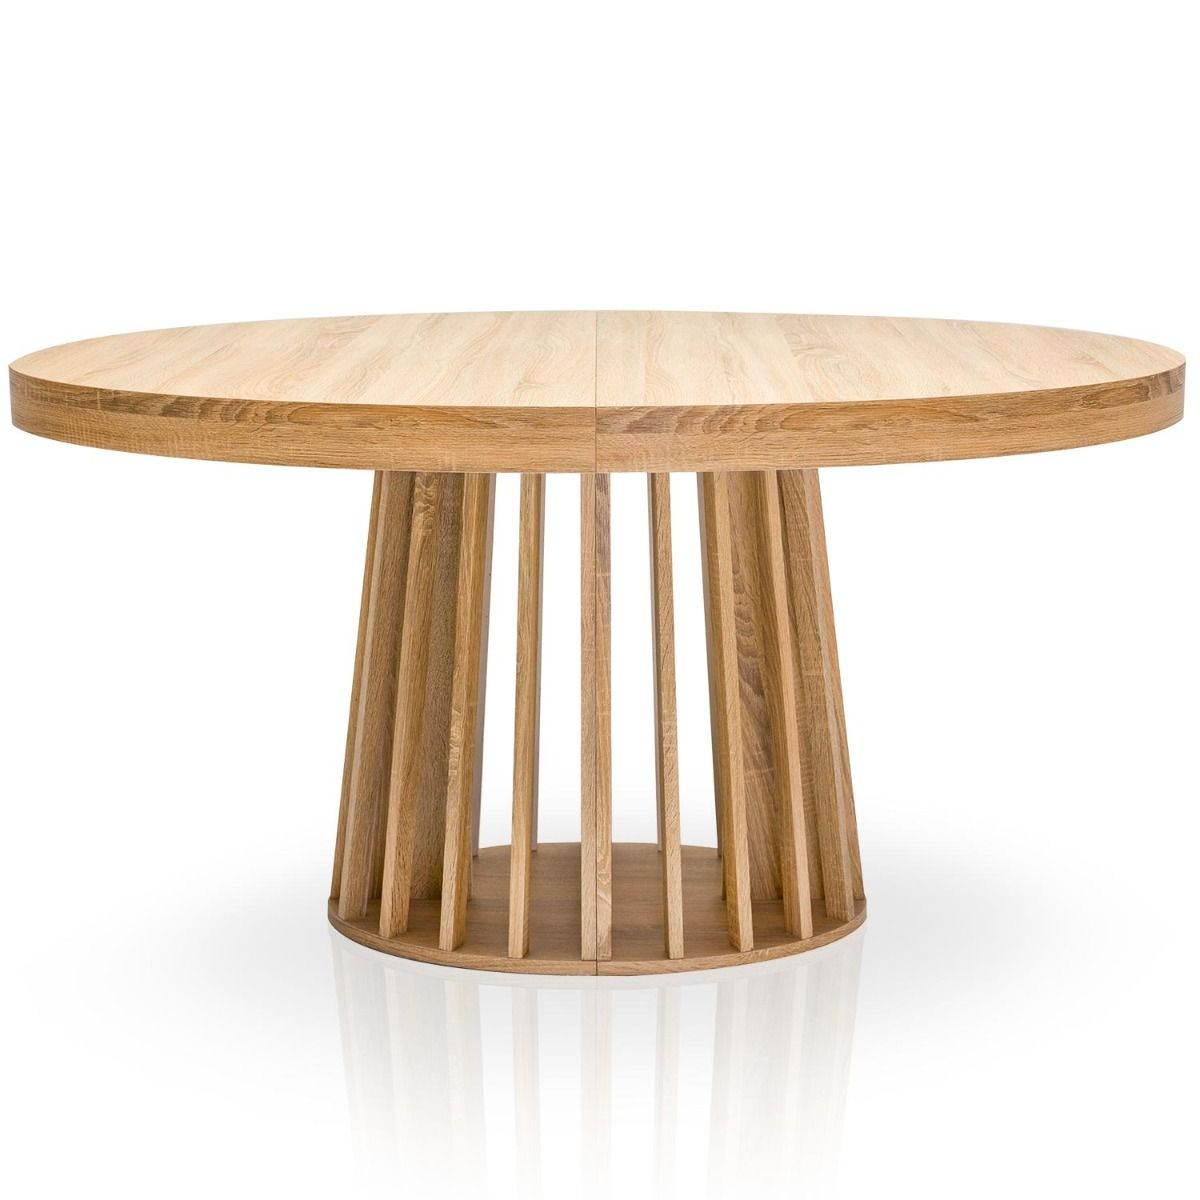 Table Ovale Extensible Eliza Chene Clair Table Ronde Extensible Table Ronde Bois Table Ovale Bois